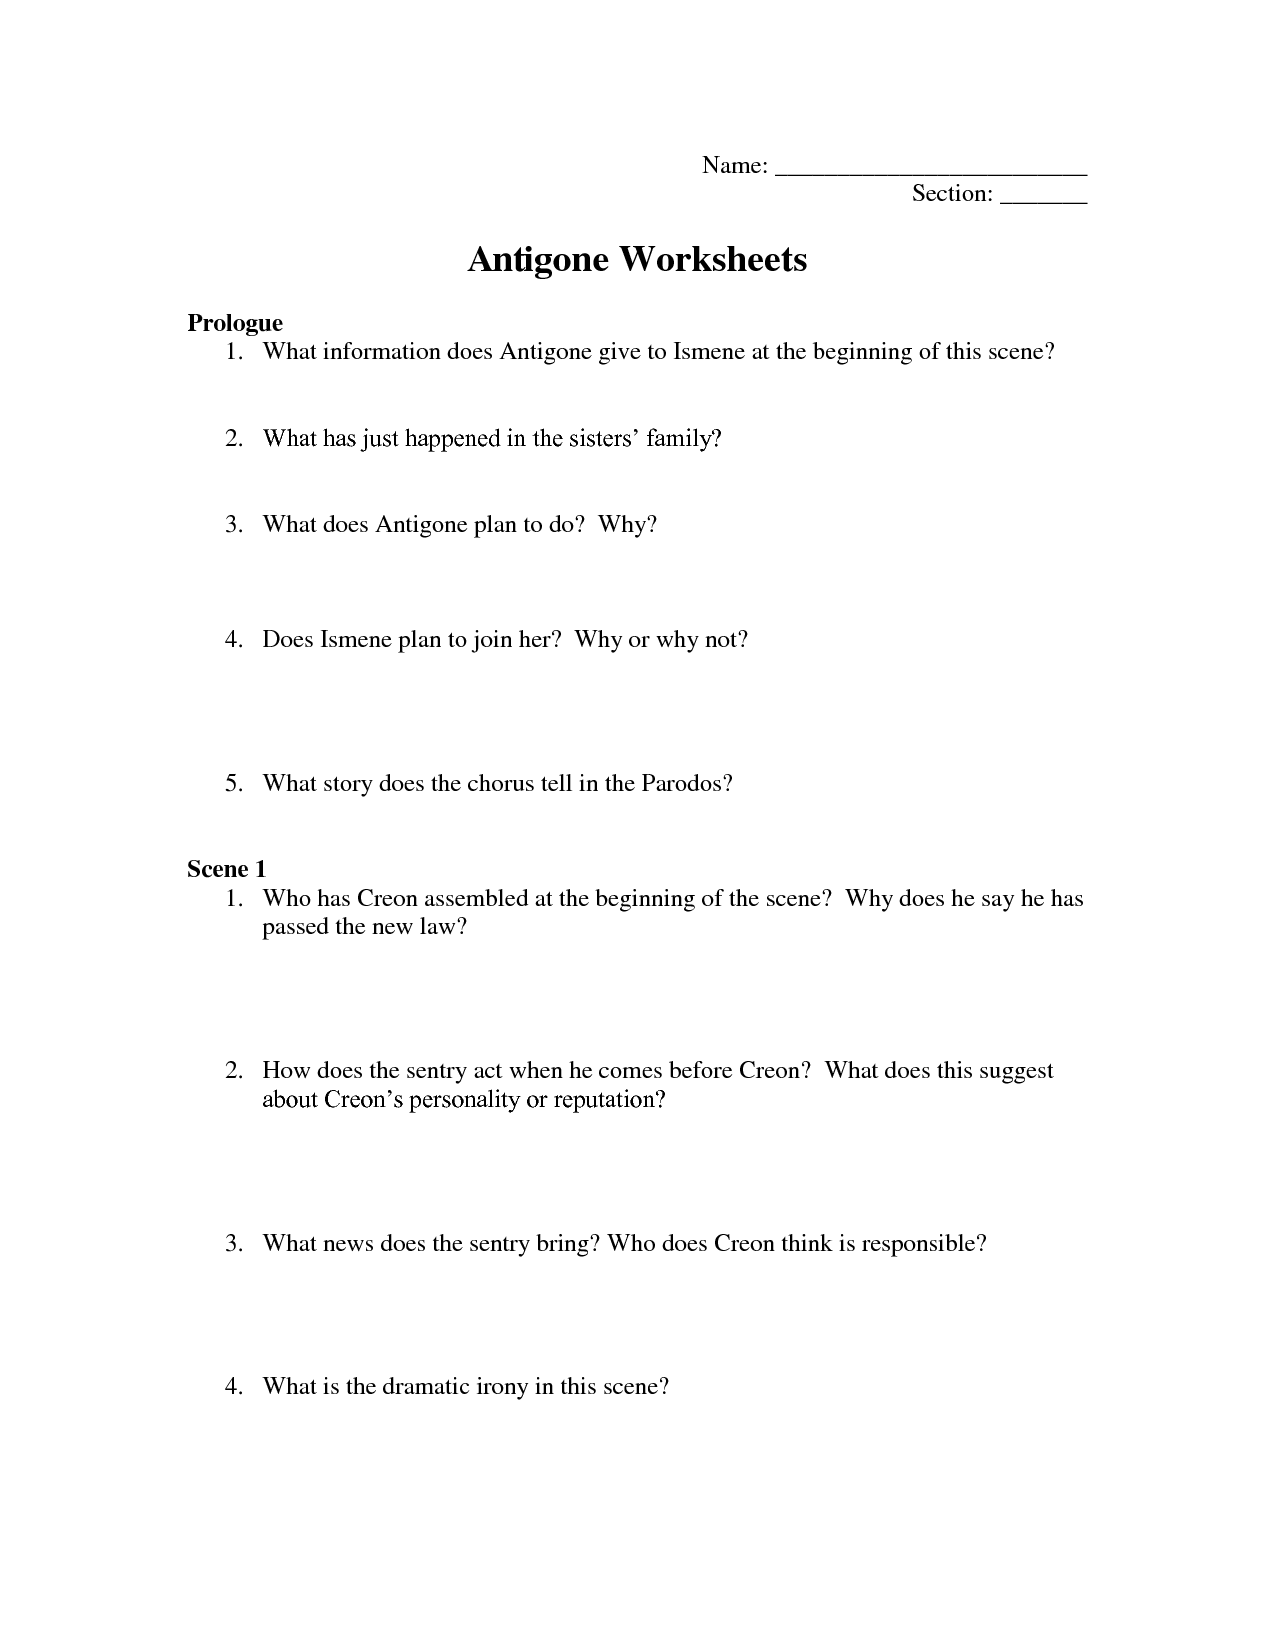 Practice Problems For Significant Figures Worksheet